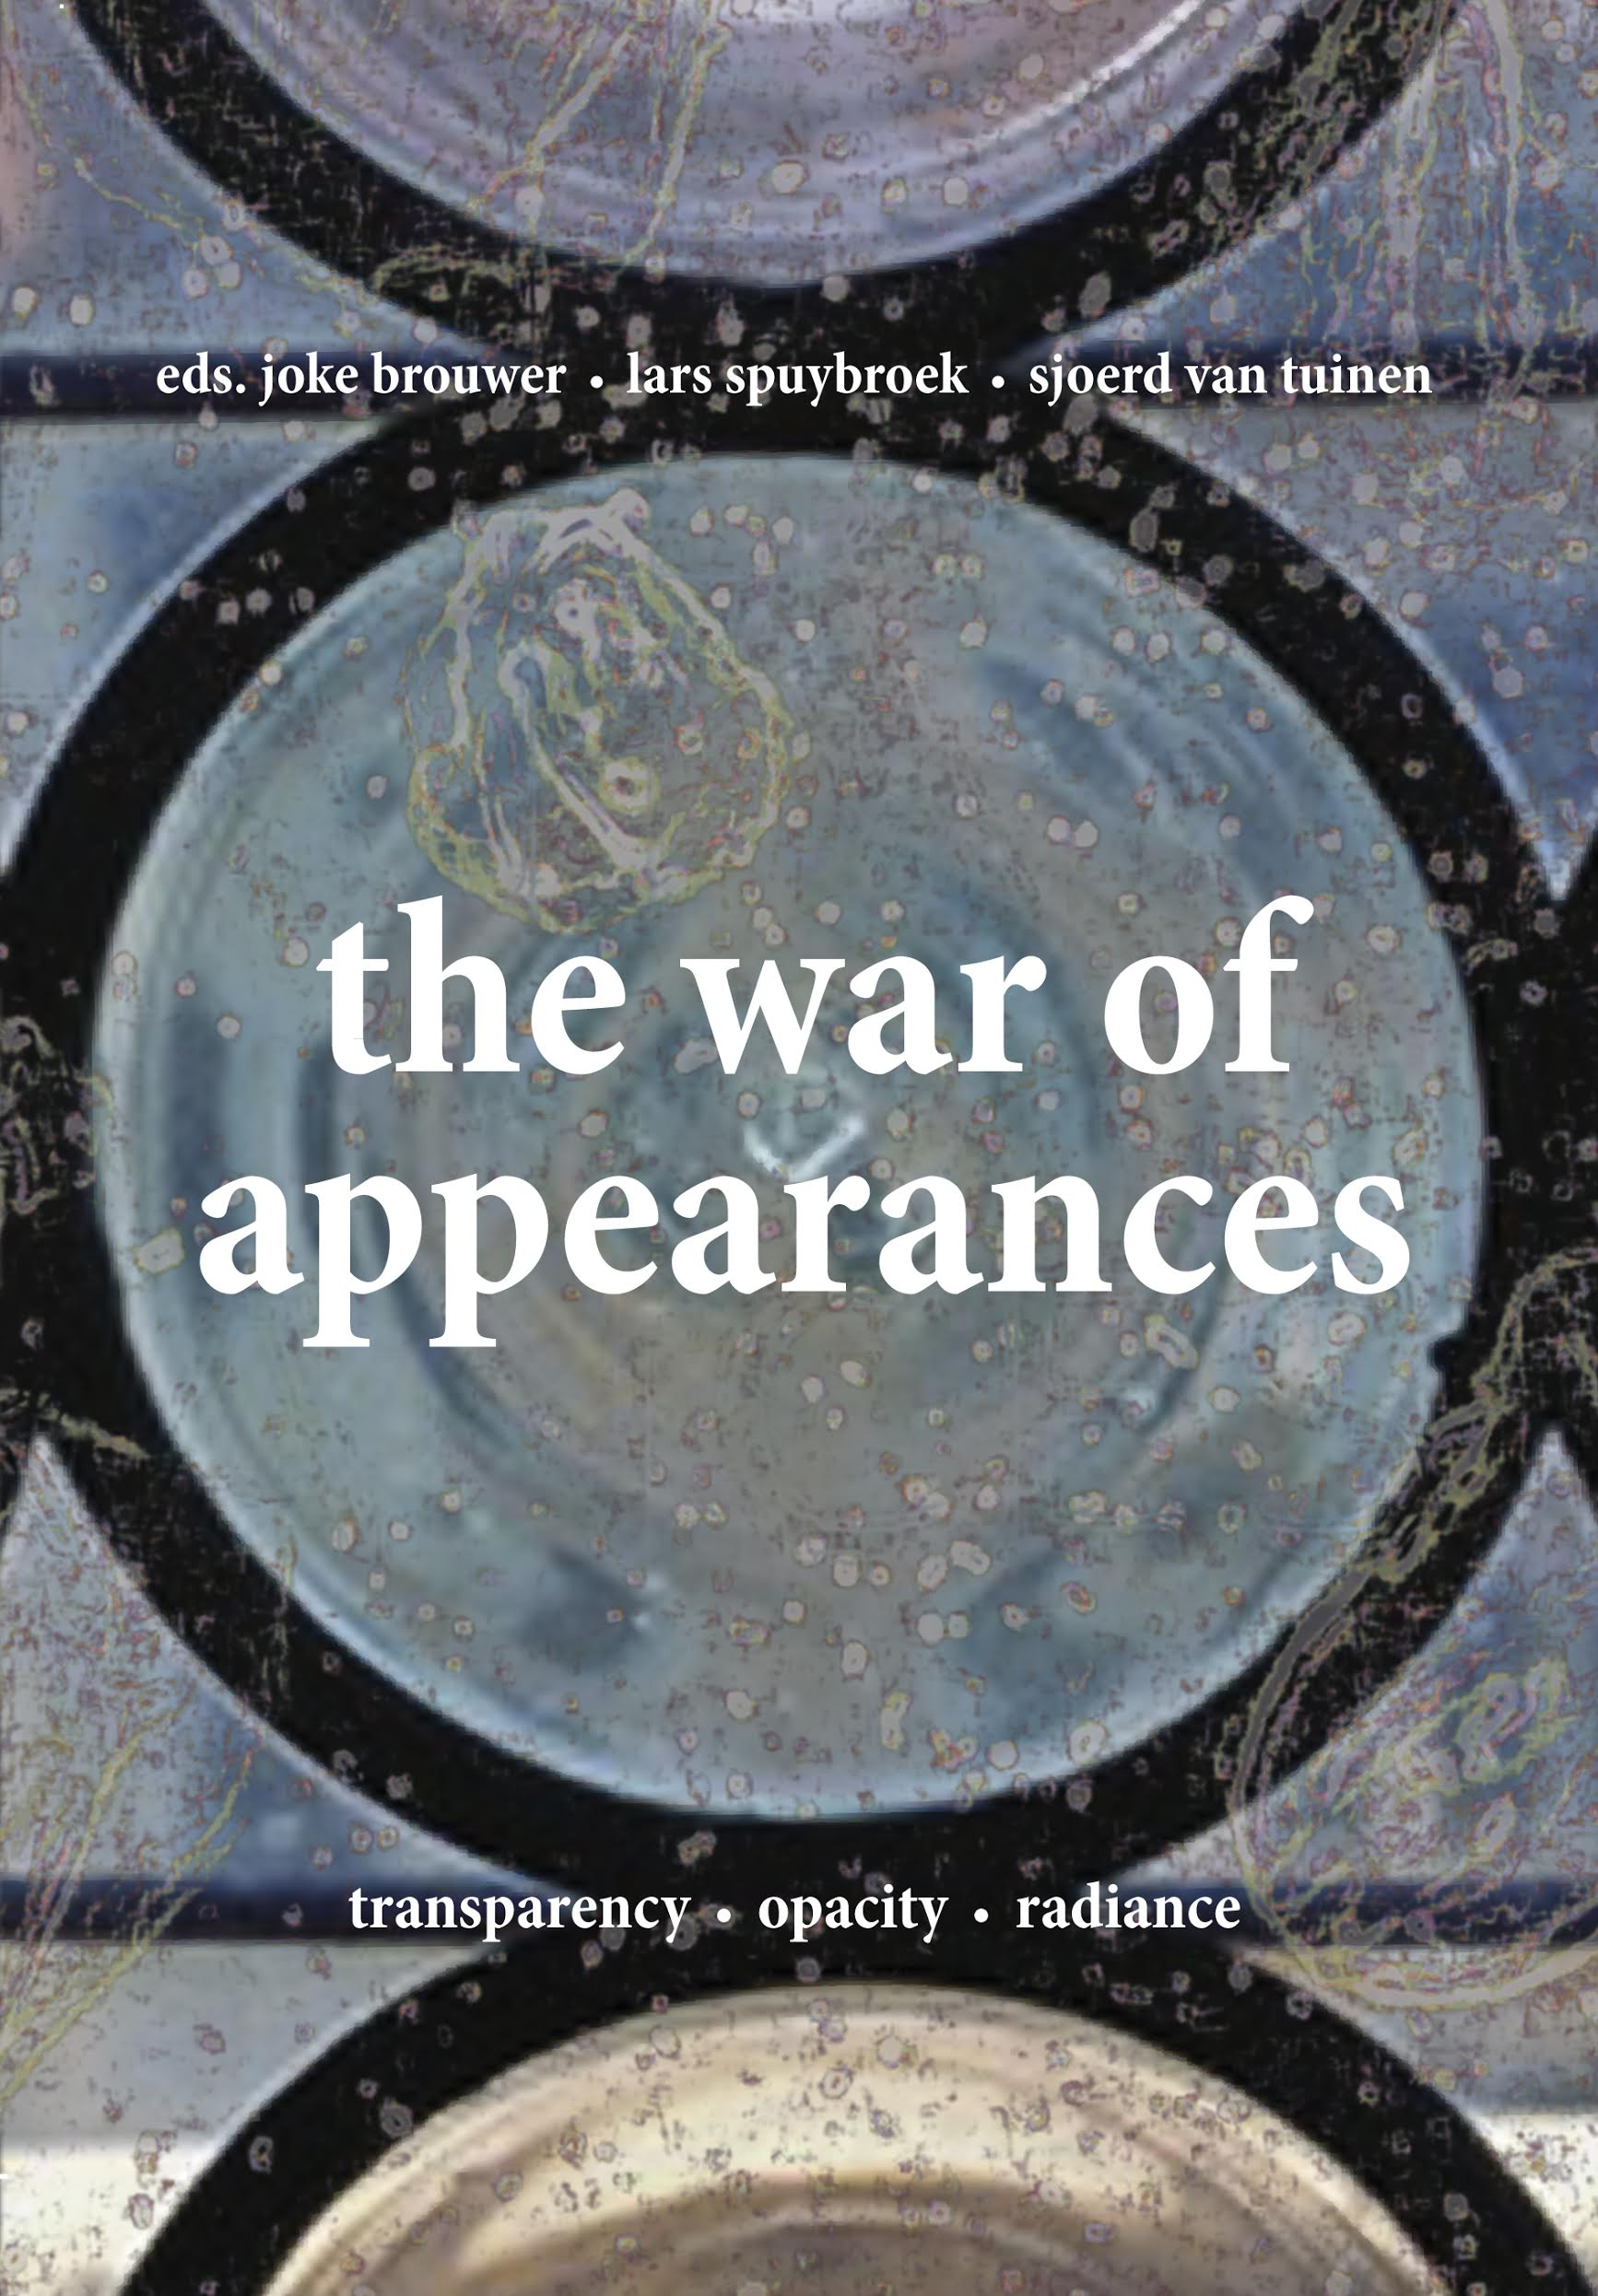 The War of Appearances: Transparency, Opacity, Radiance